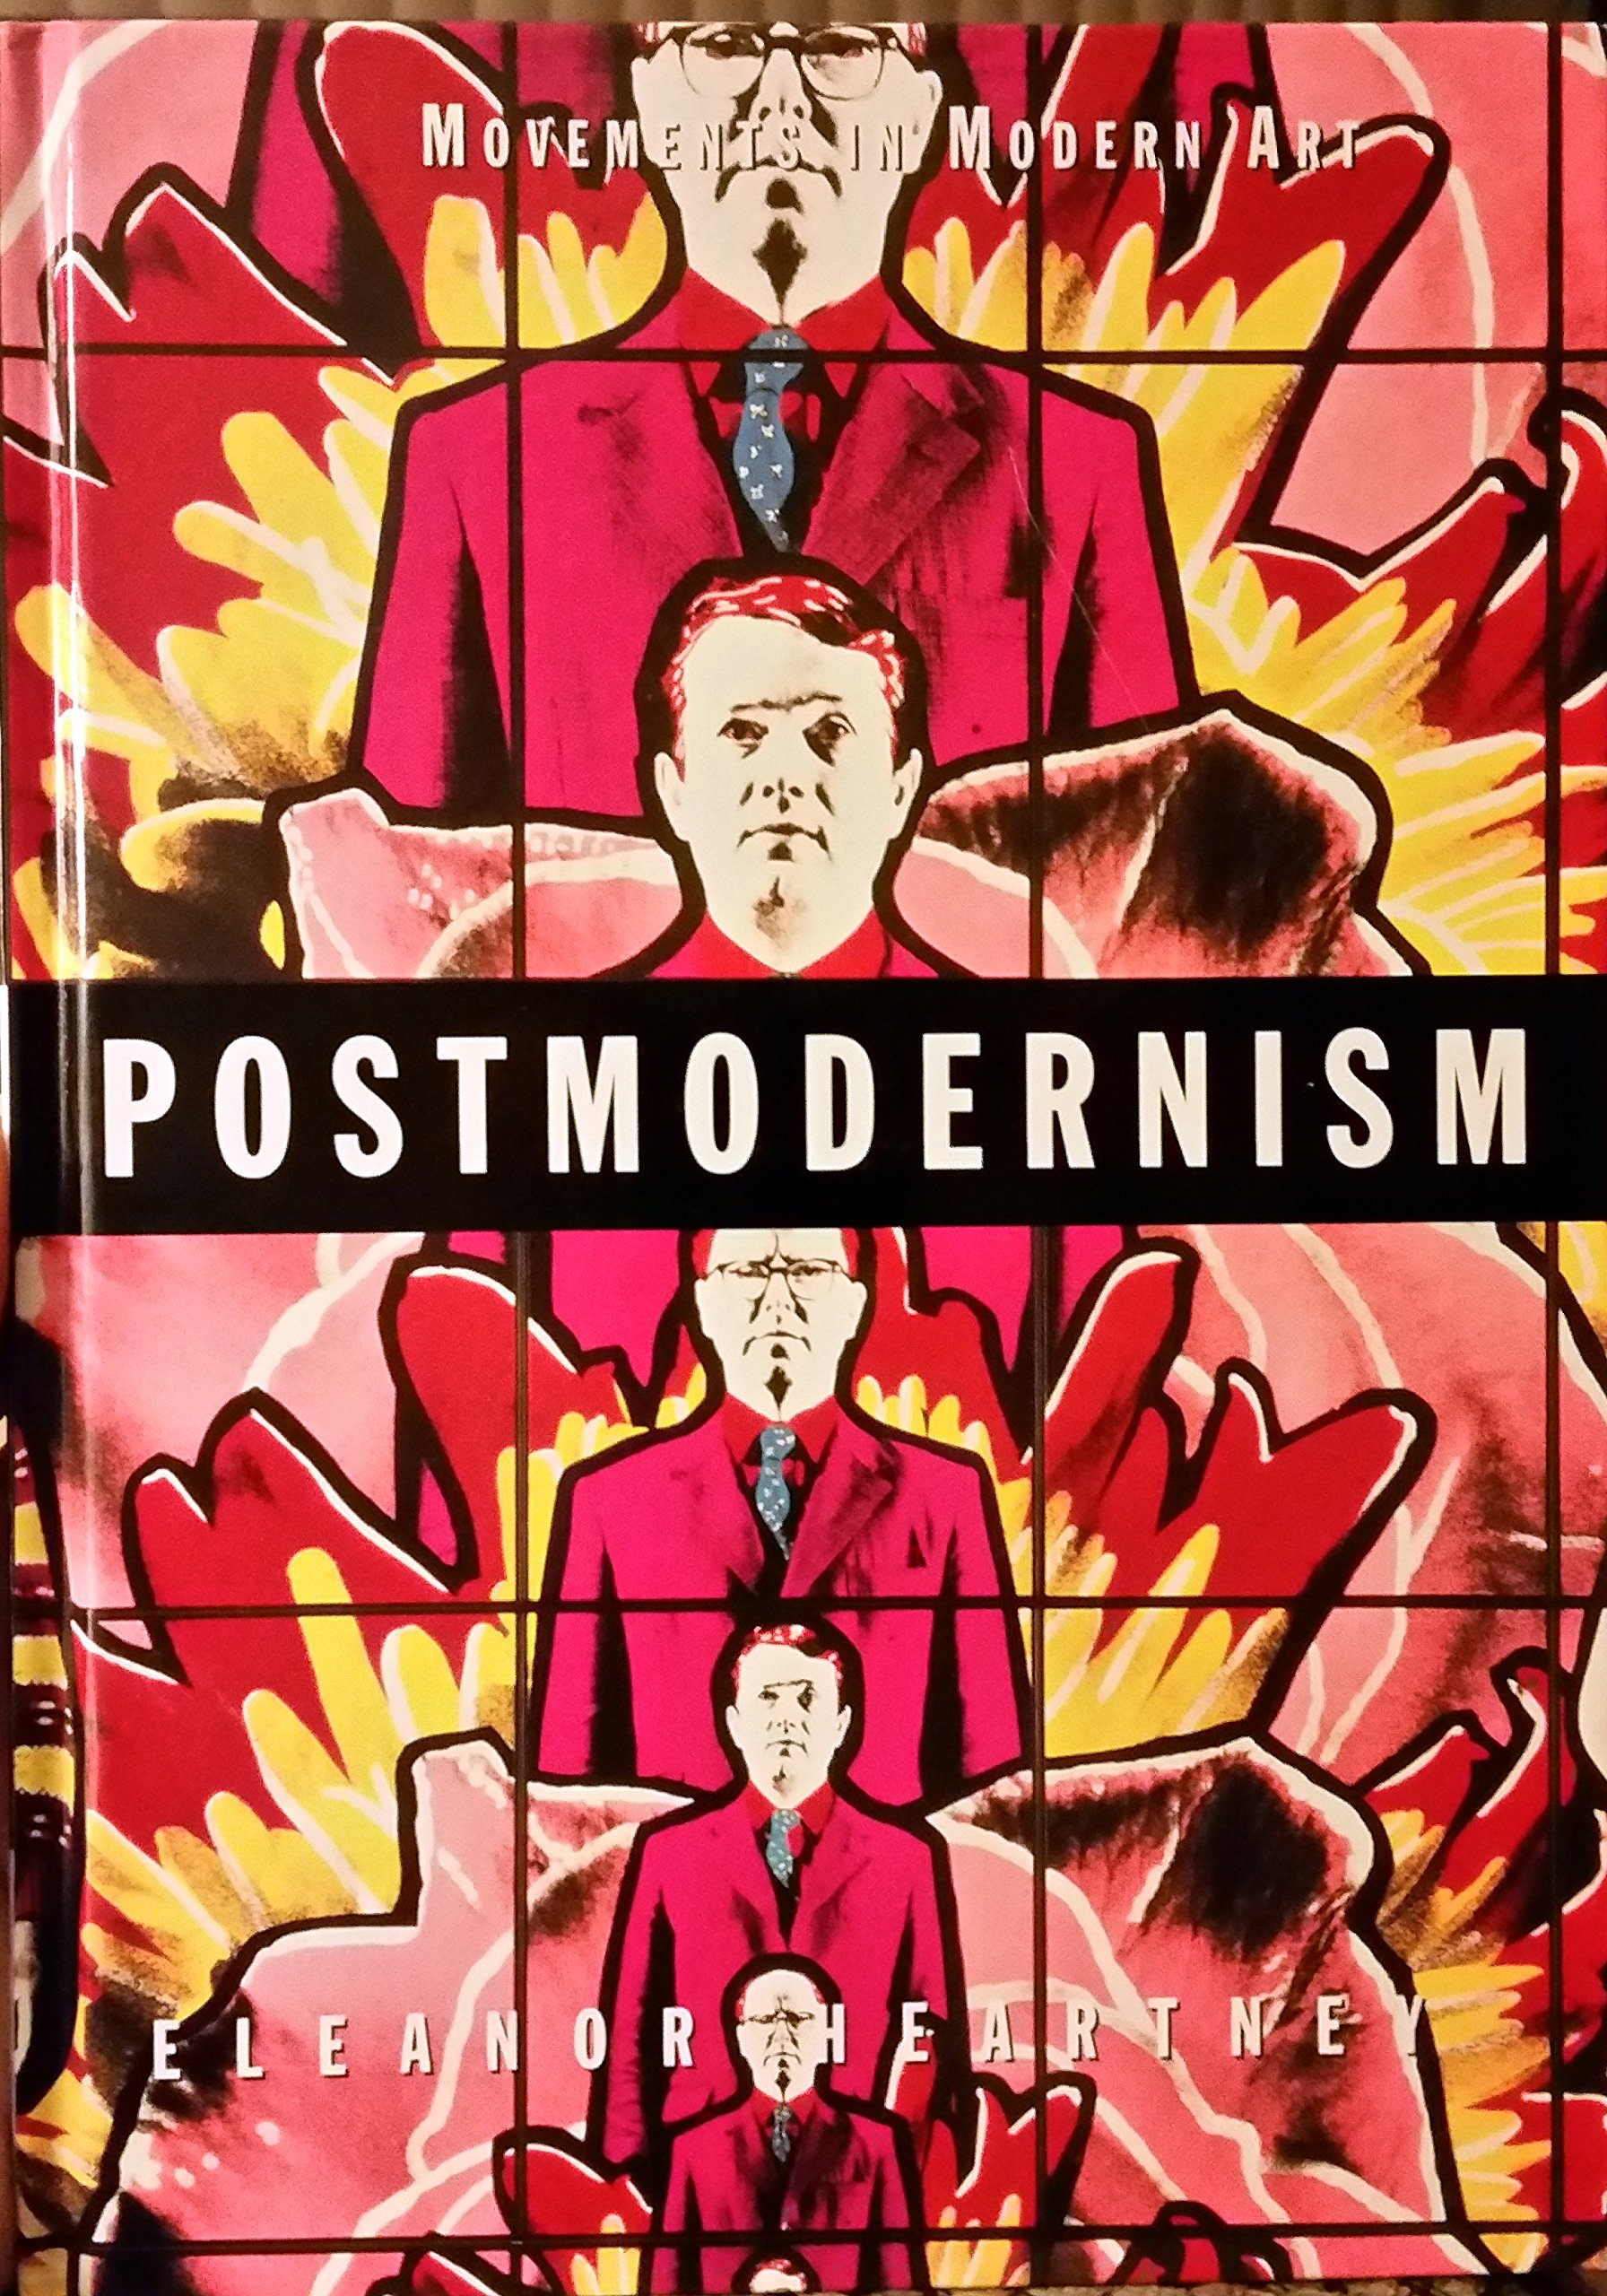 Download Postmodernism (Movements in Modern Art) PDF